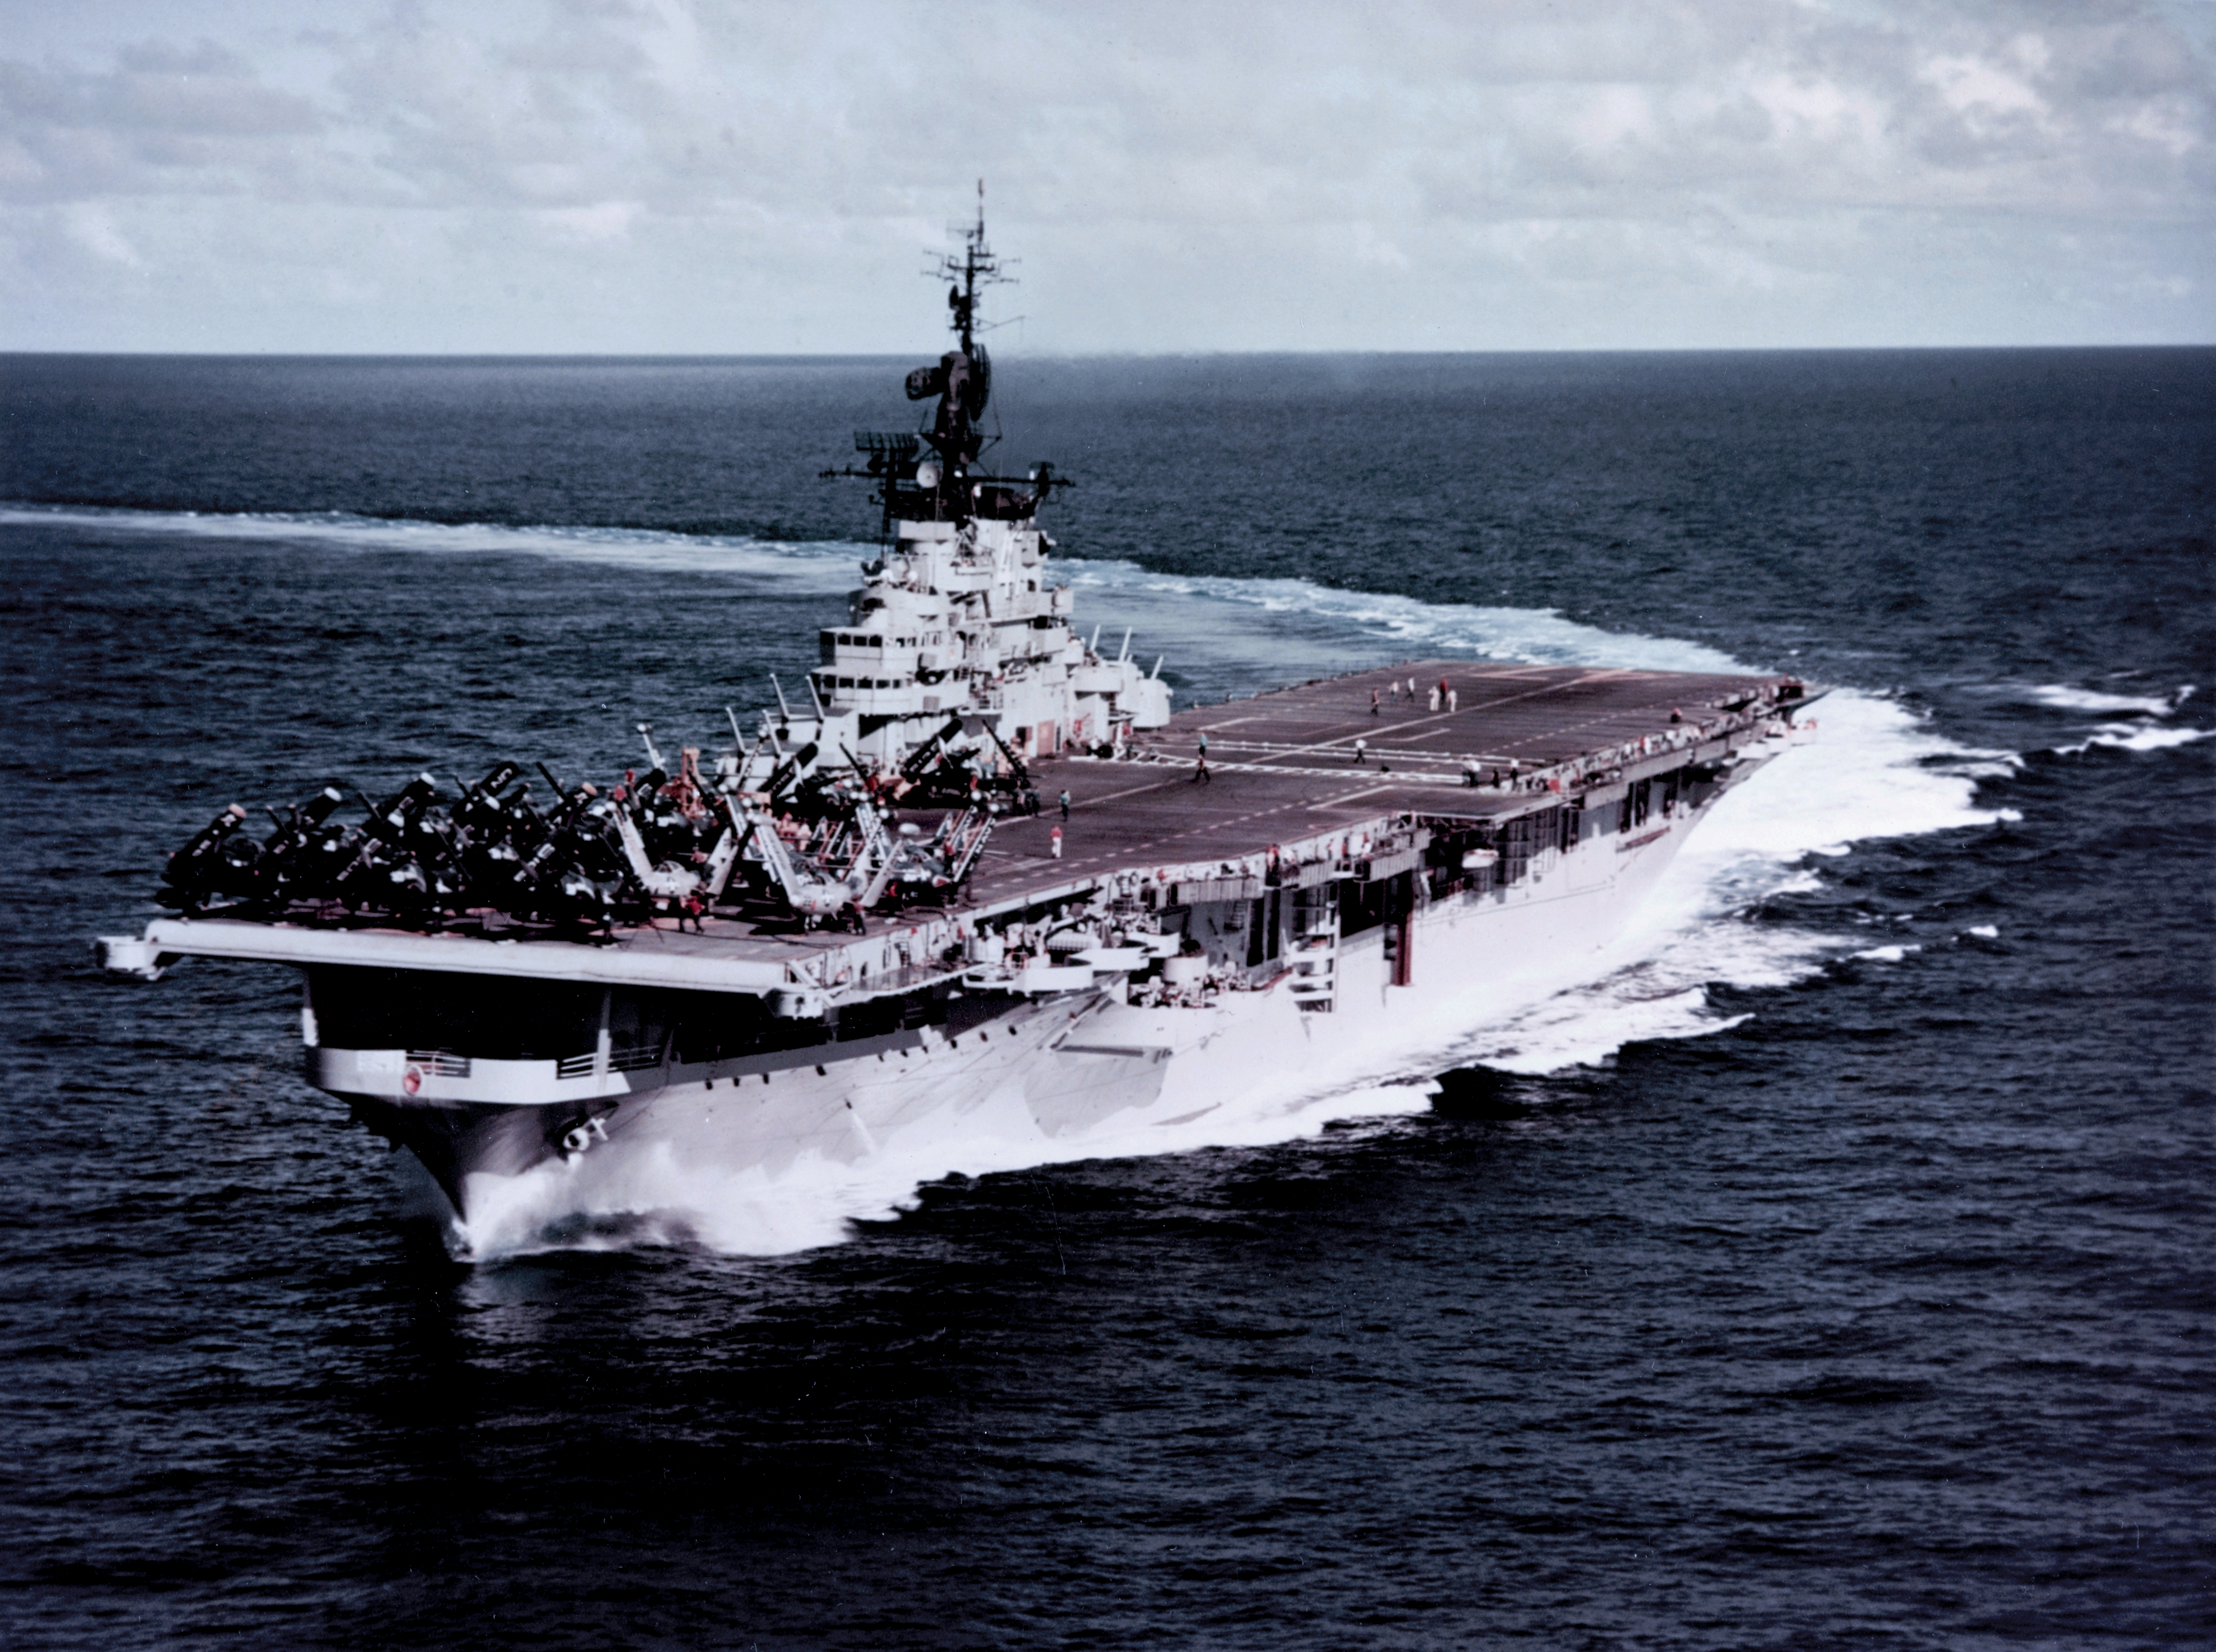 Essex-class aircraft carrier - Wikipedia